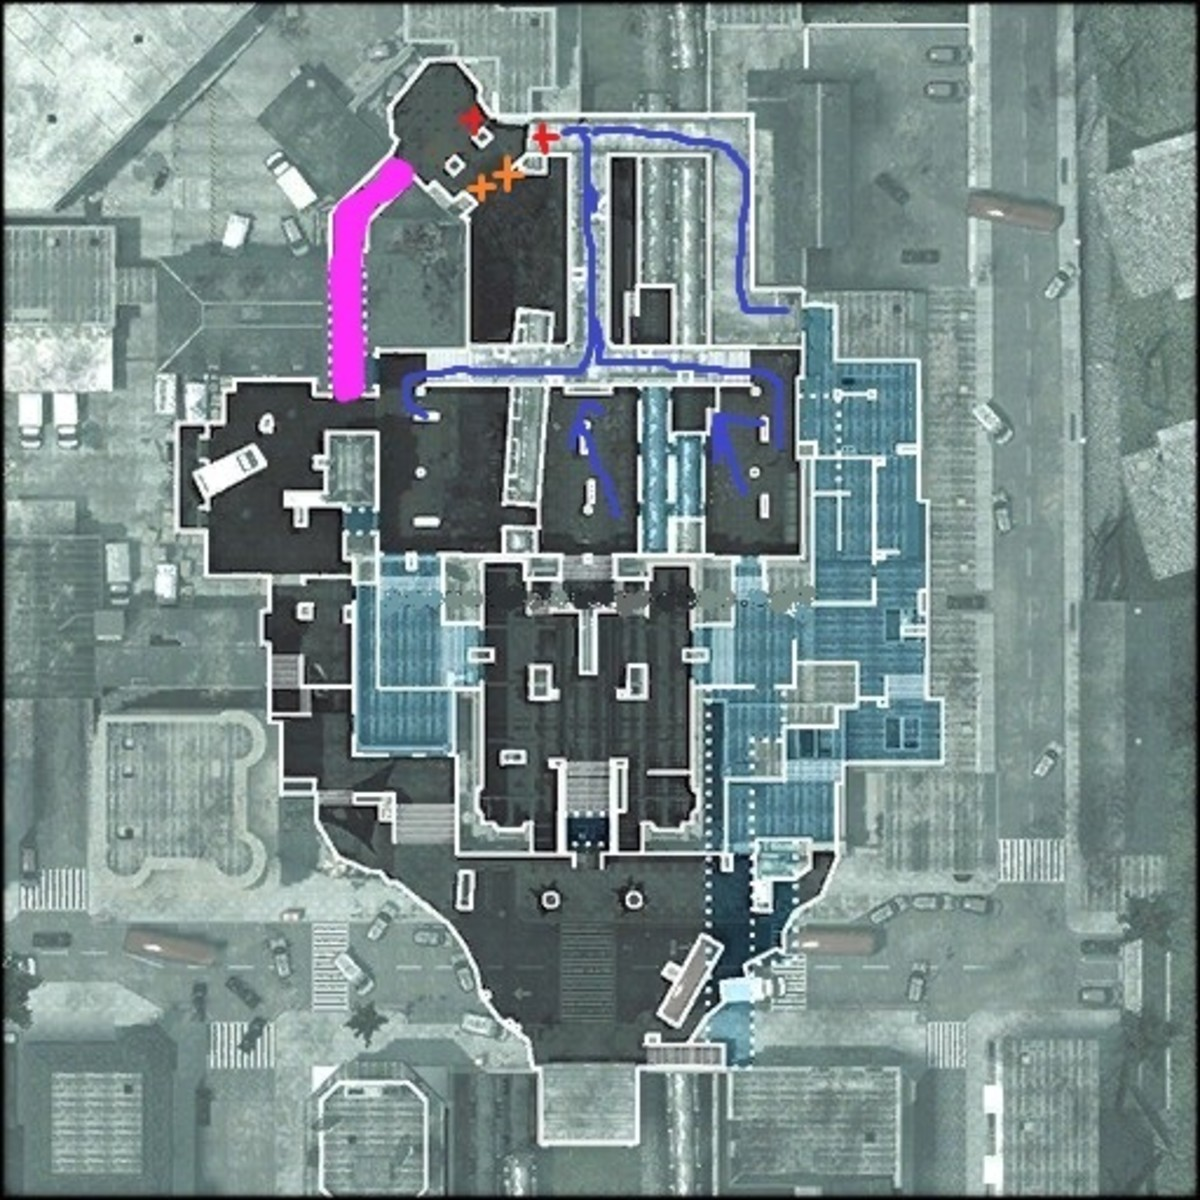 tips-for-underground-on-survival-mode-in-spec-ops-on-call-of-duty-modern-warfare-3-learn-how-to-get-far-mw3